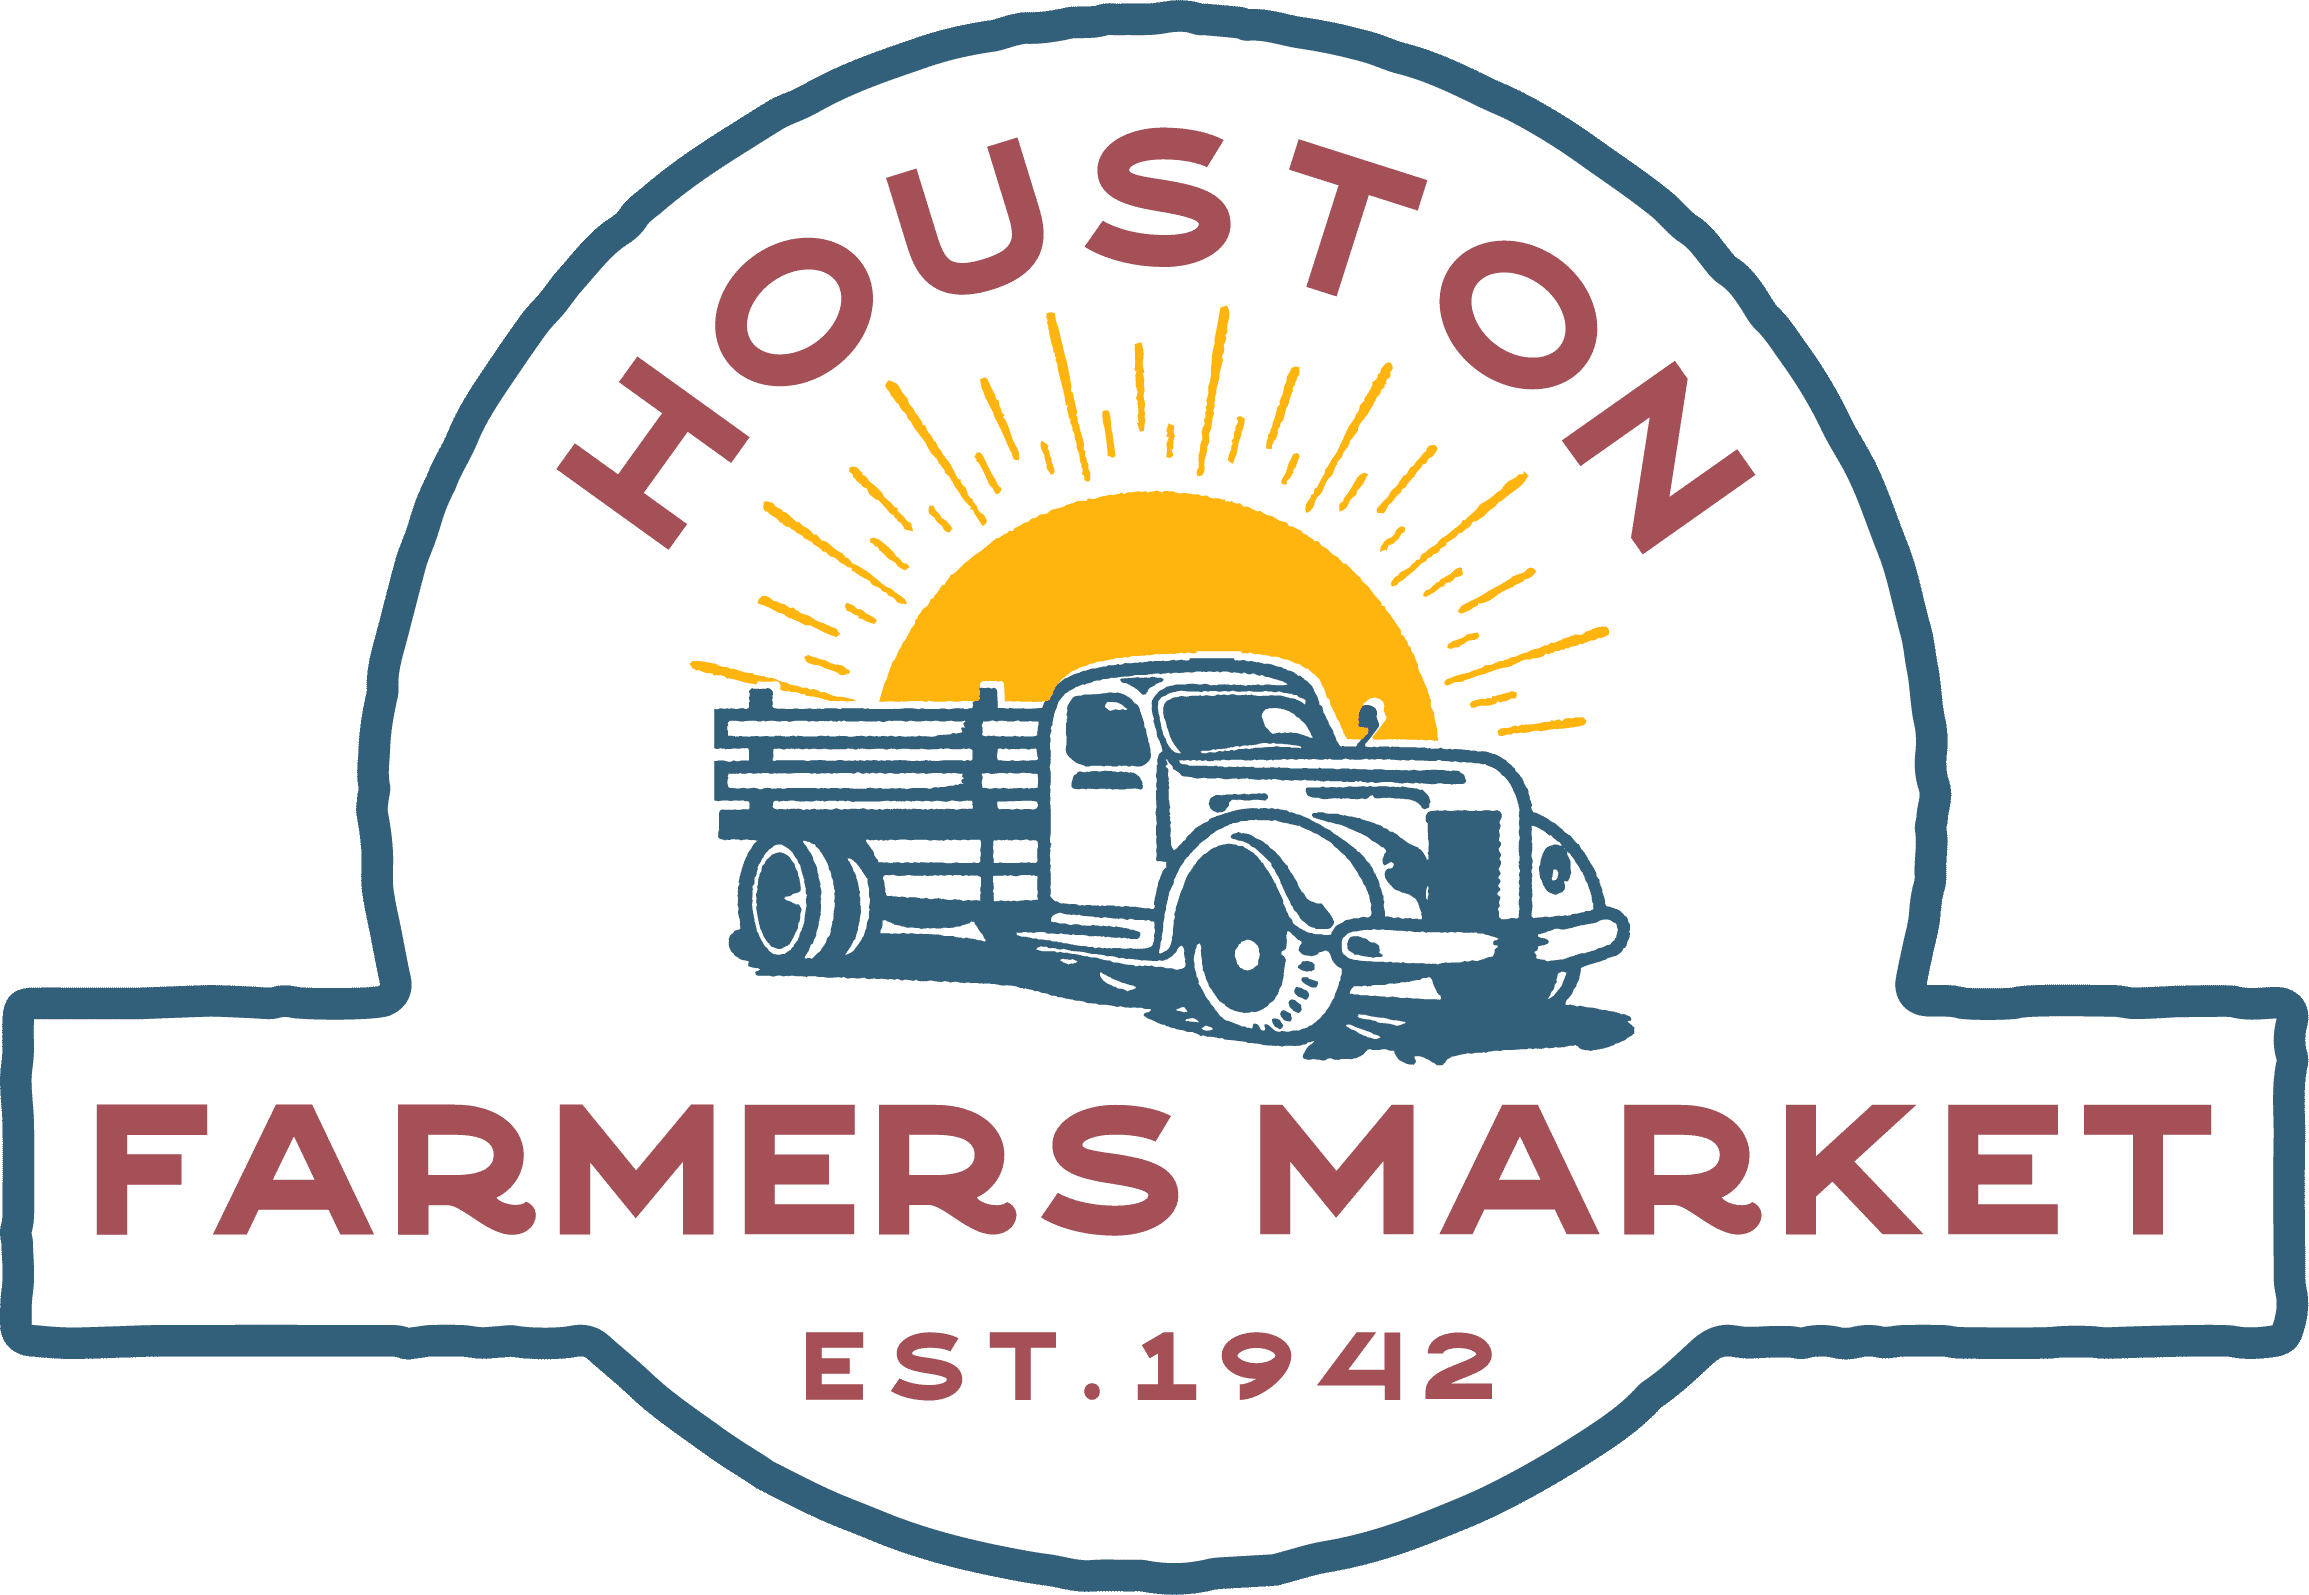 Houston Farmers Market